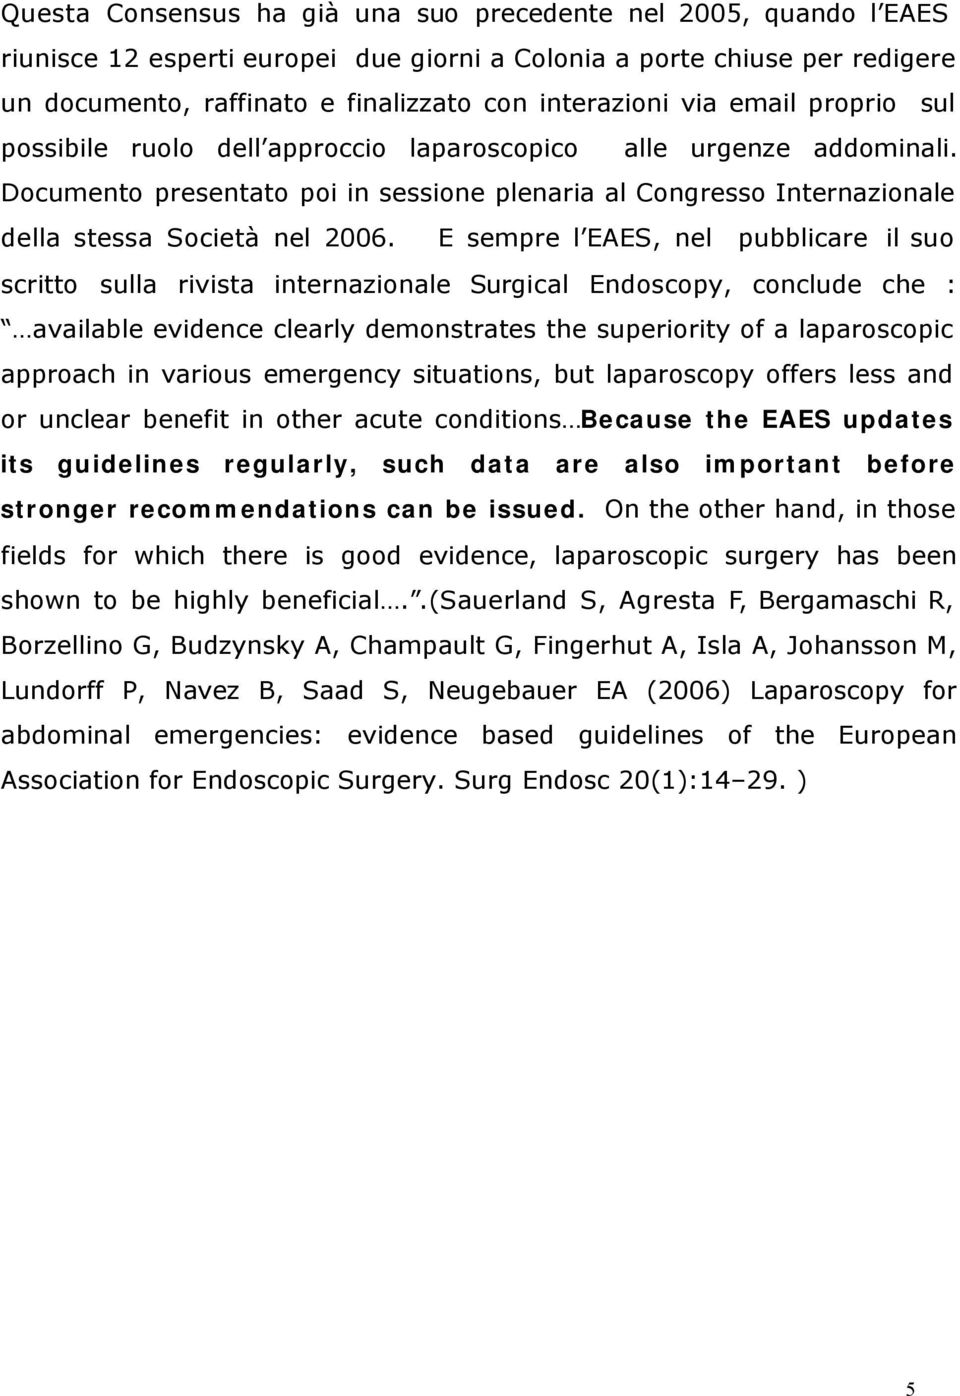 E sempre l EAES, nel pubblicare il suo scritto sulla rivista internazionale Surgical Endoscopy, conclude che : available evidence clearly demonstrates the superiority of a laparoscopic approach in